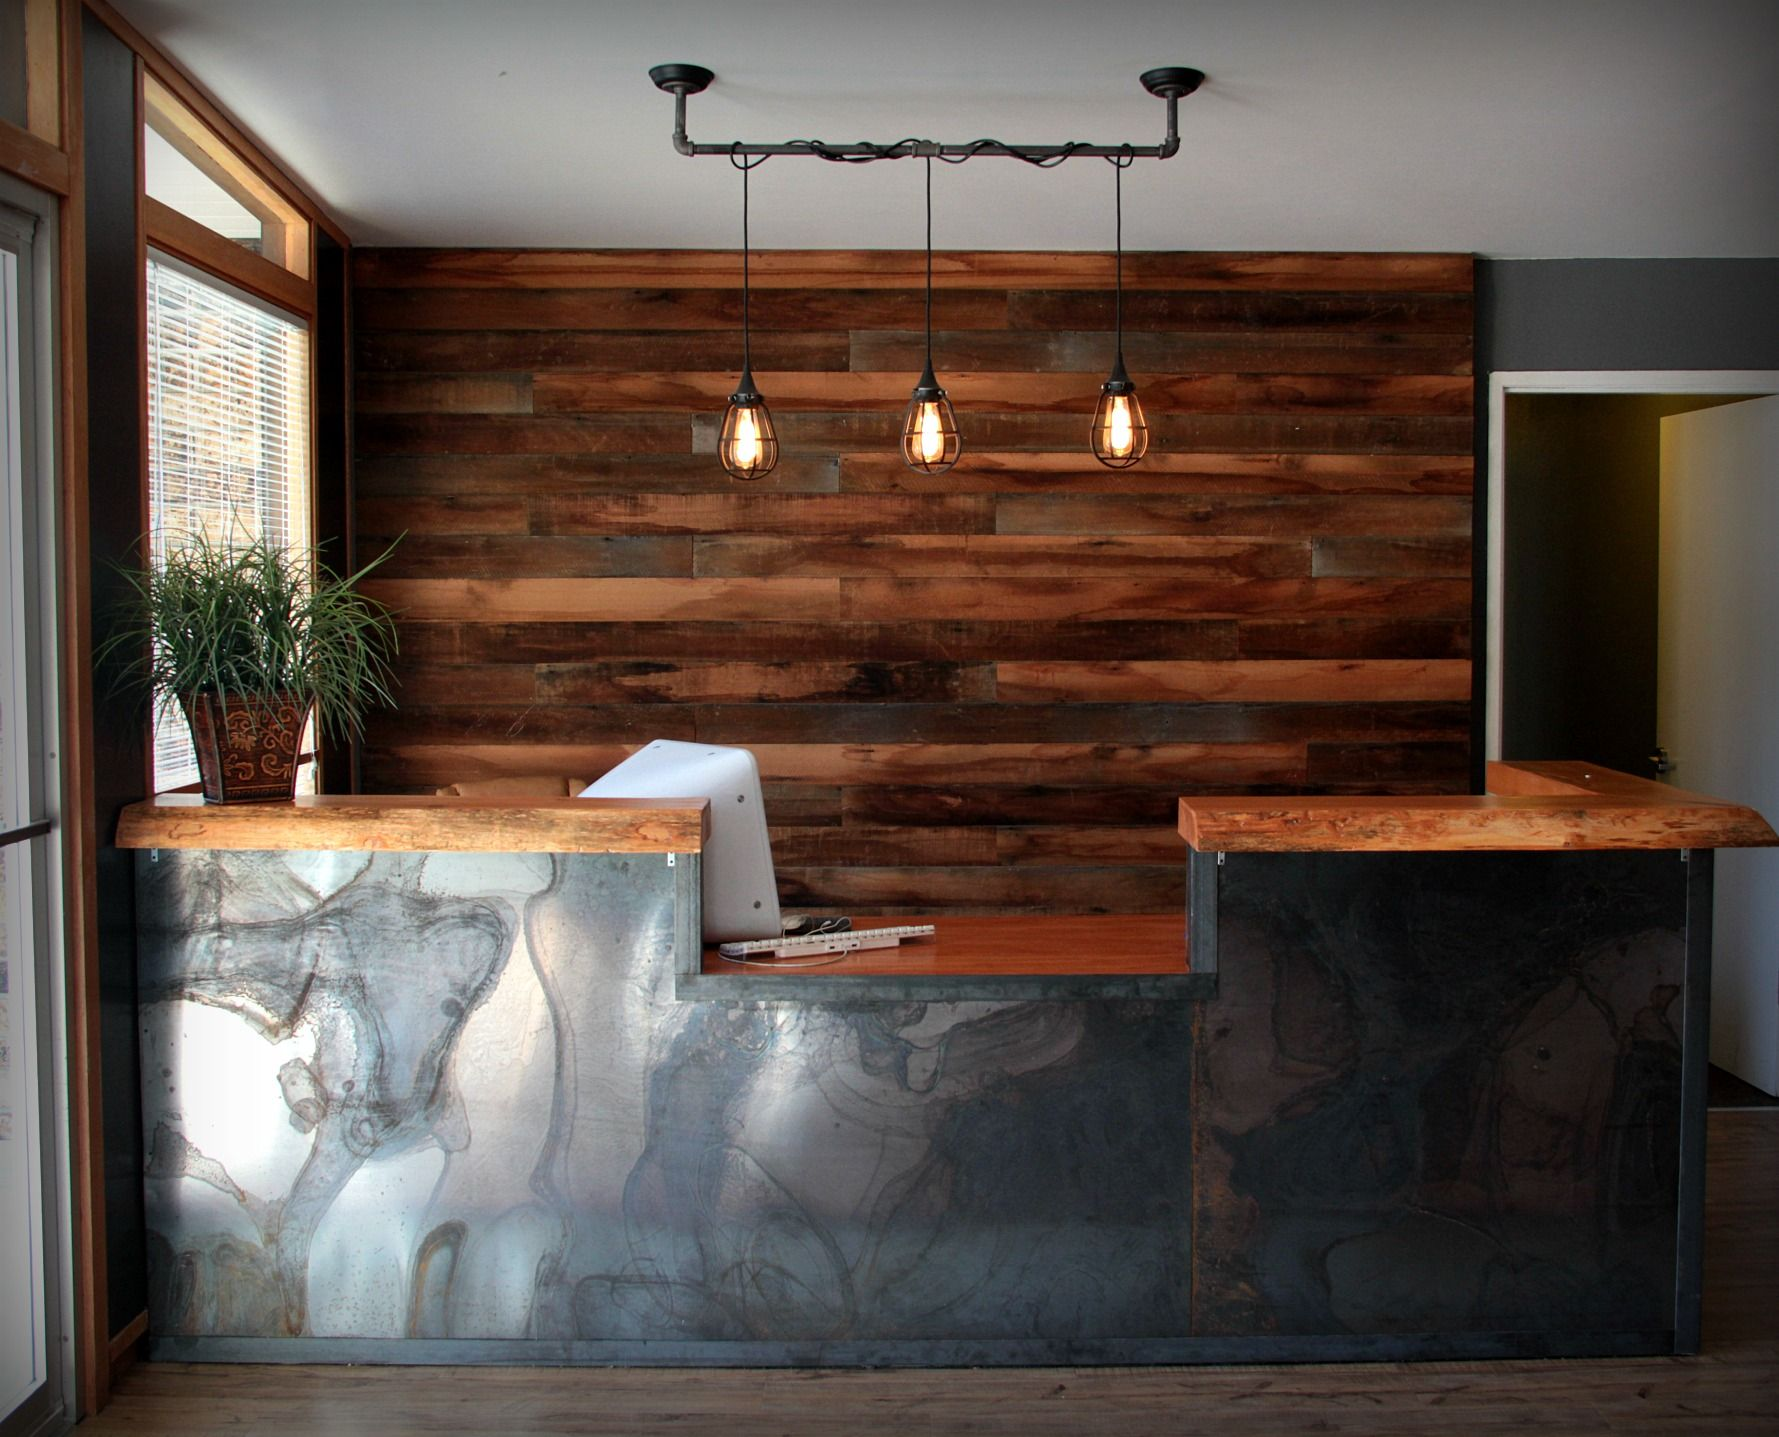 Rustic wood wall, industrial pipe pendant light, reclaimed